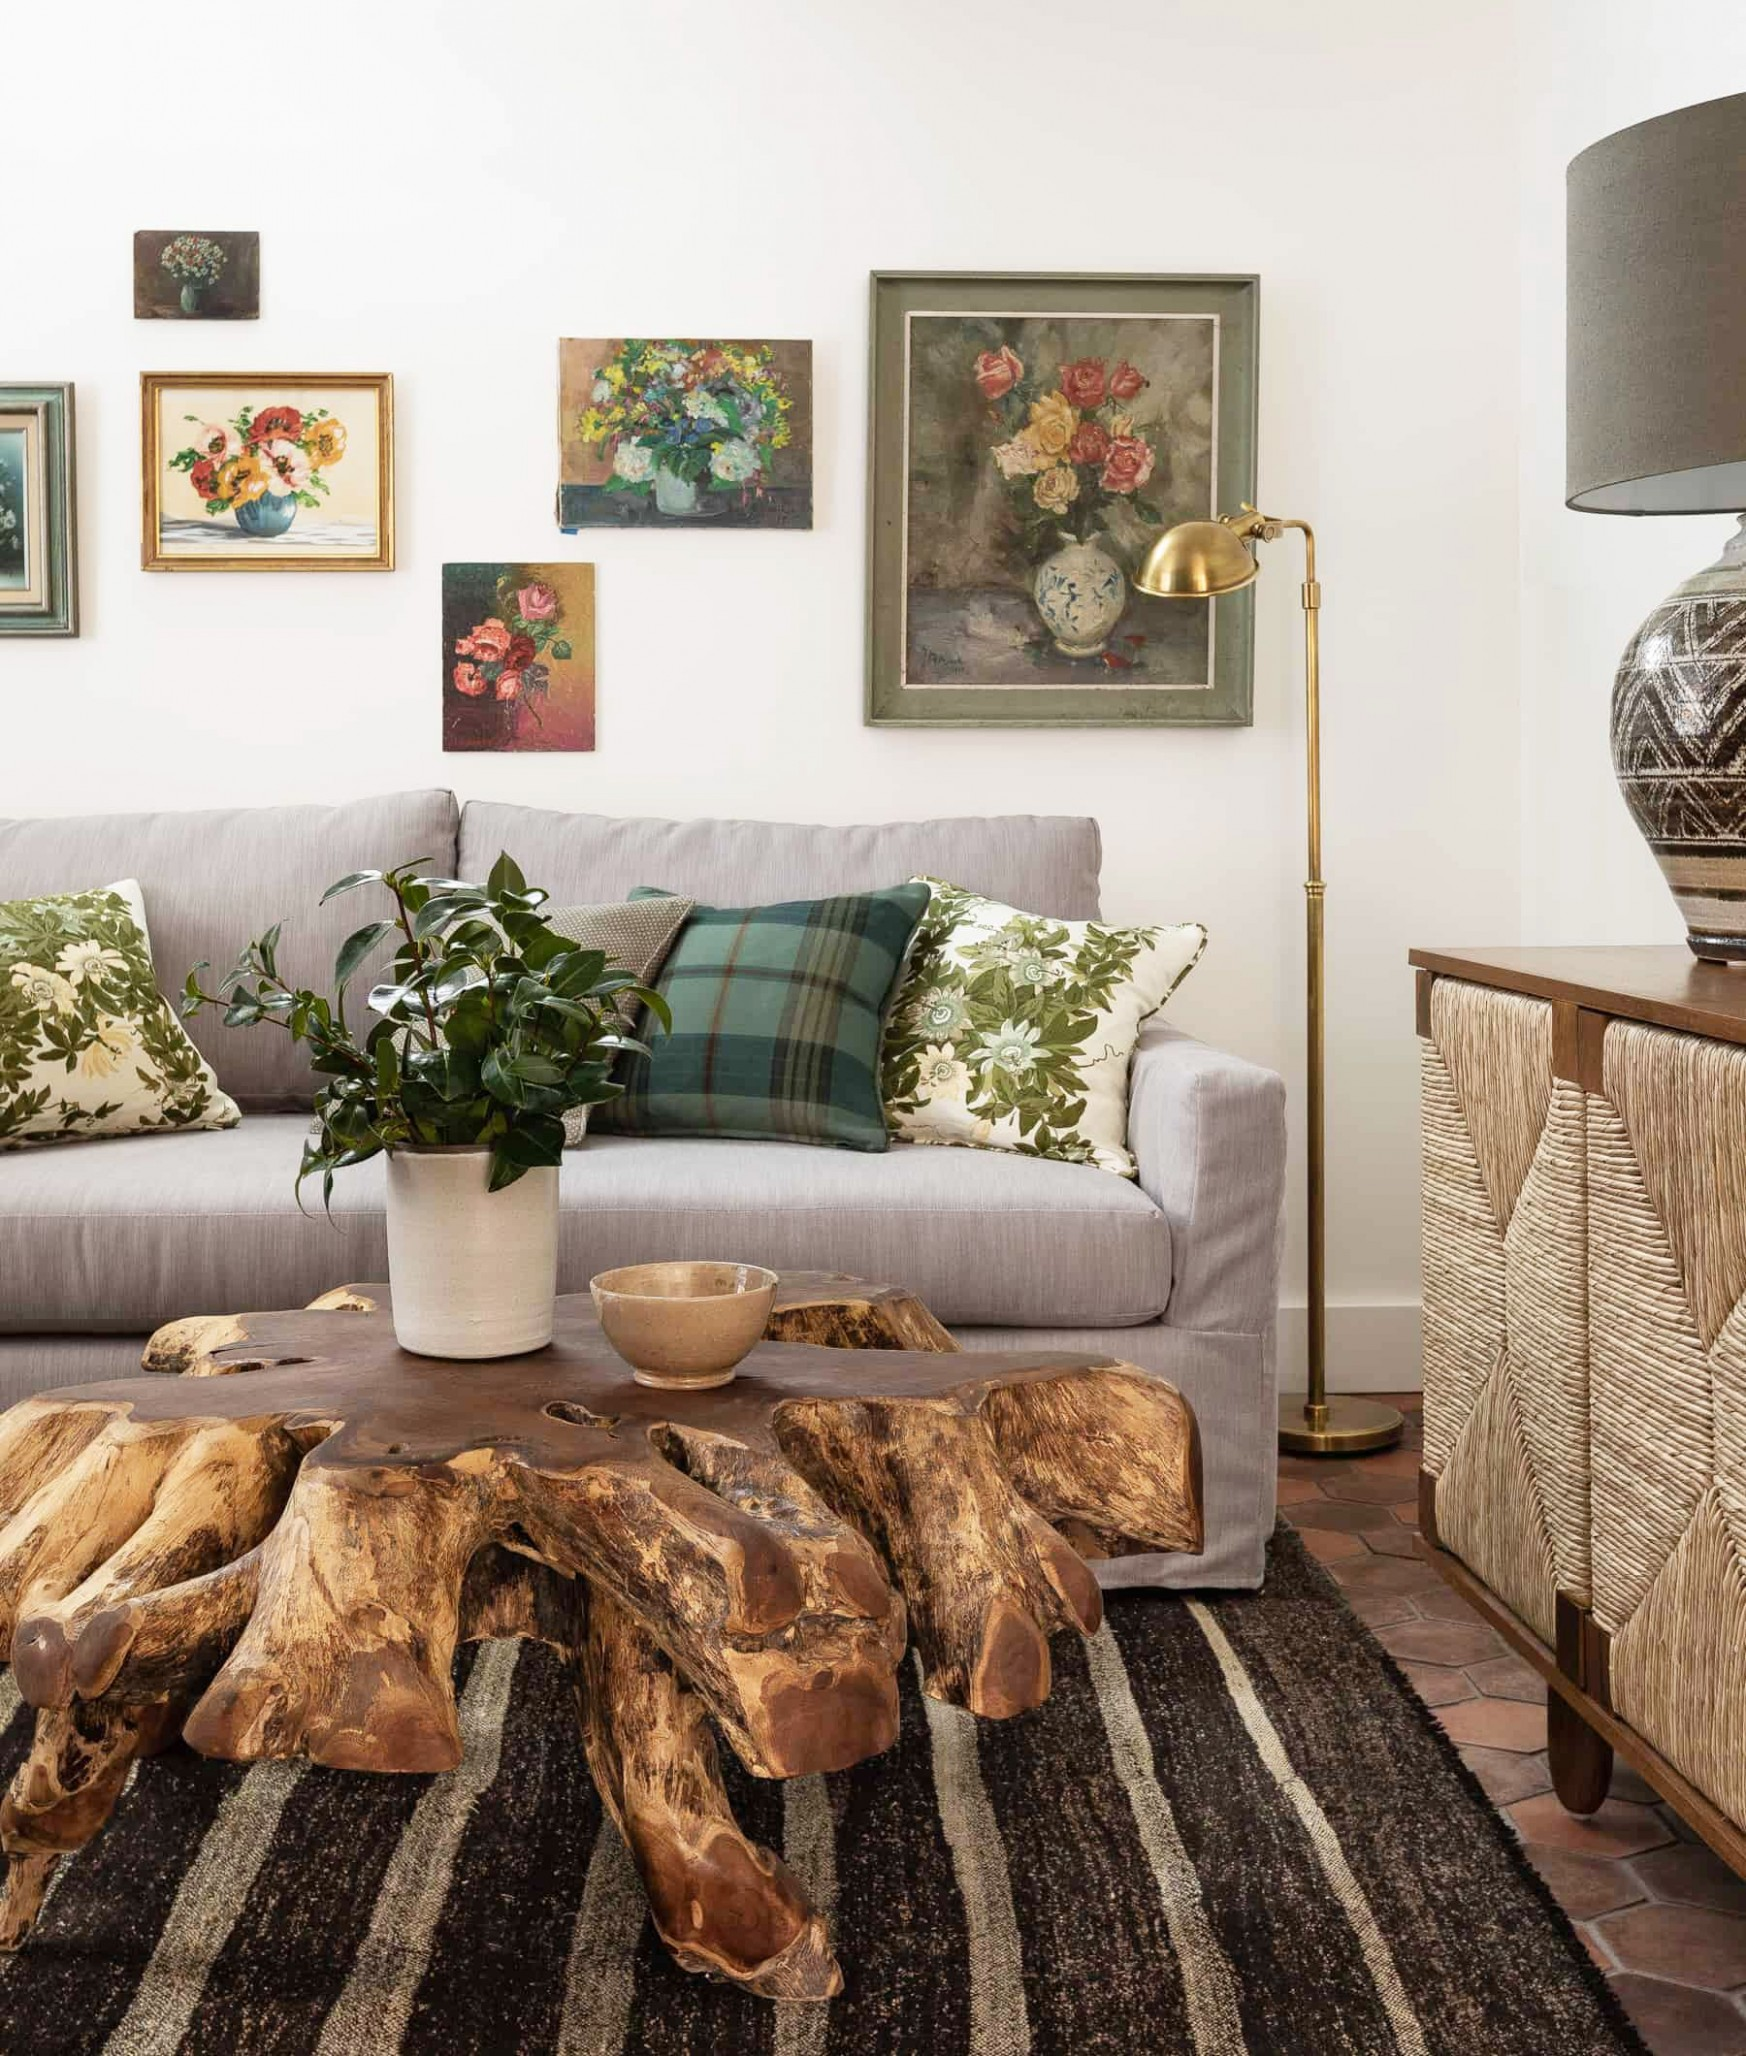 How to Decorate Your First Apartment - First Apartment Decorating  - Apartment Decorating Ideas Photos